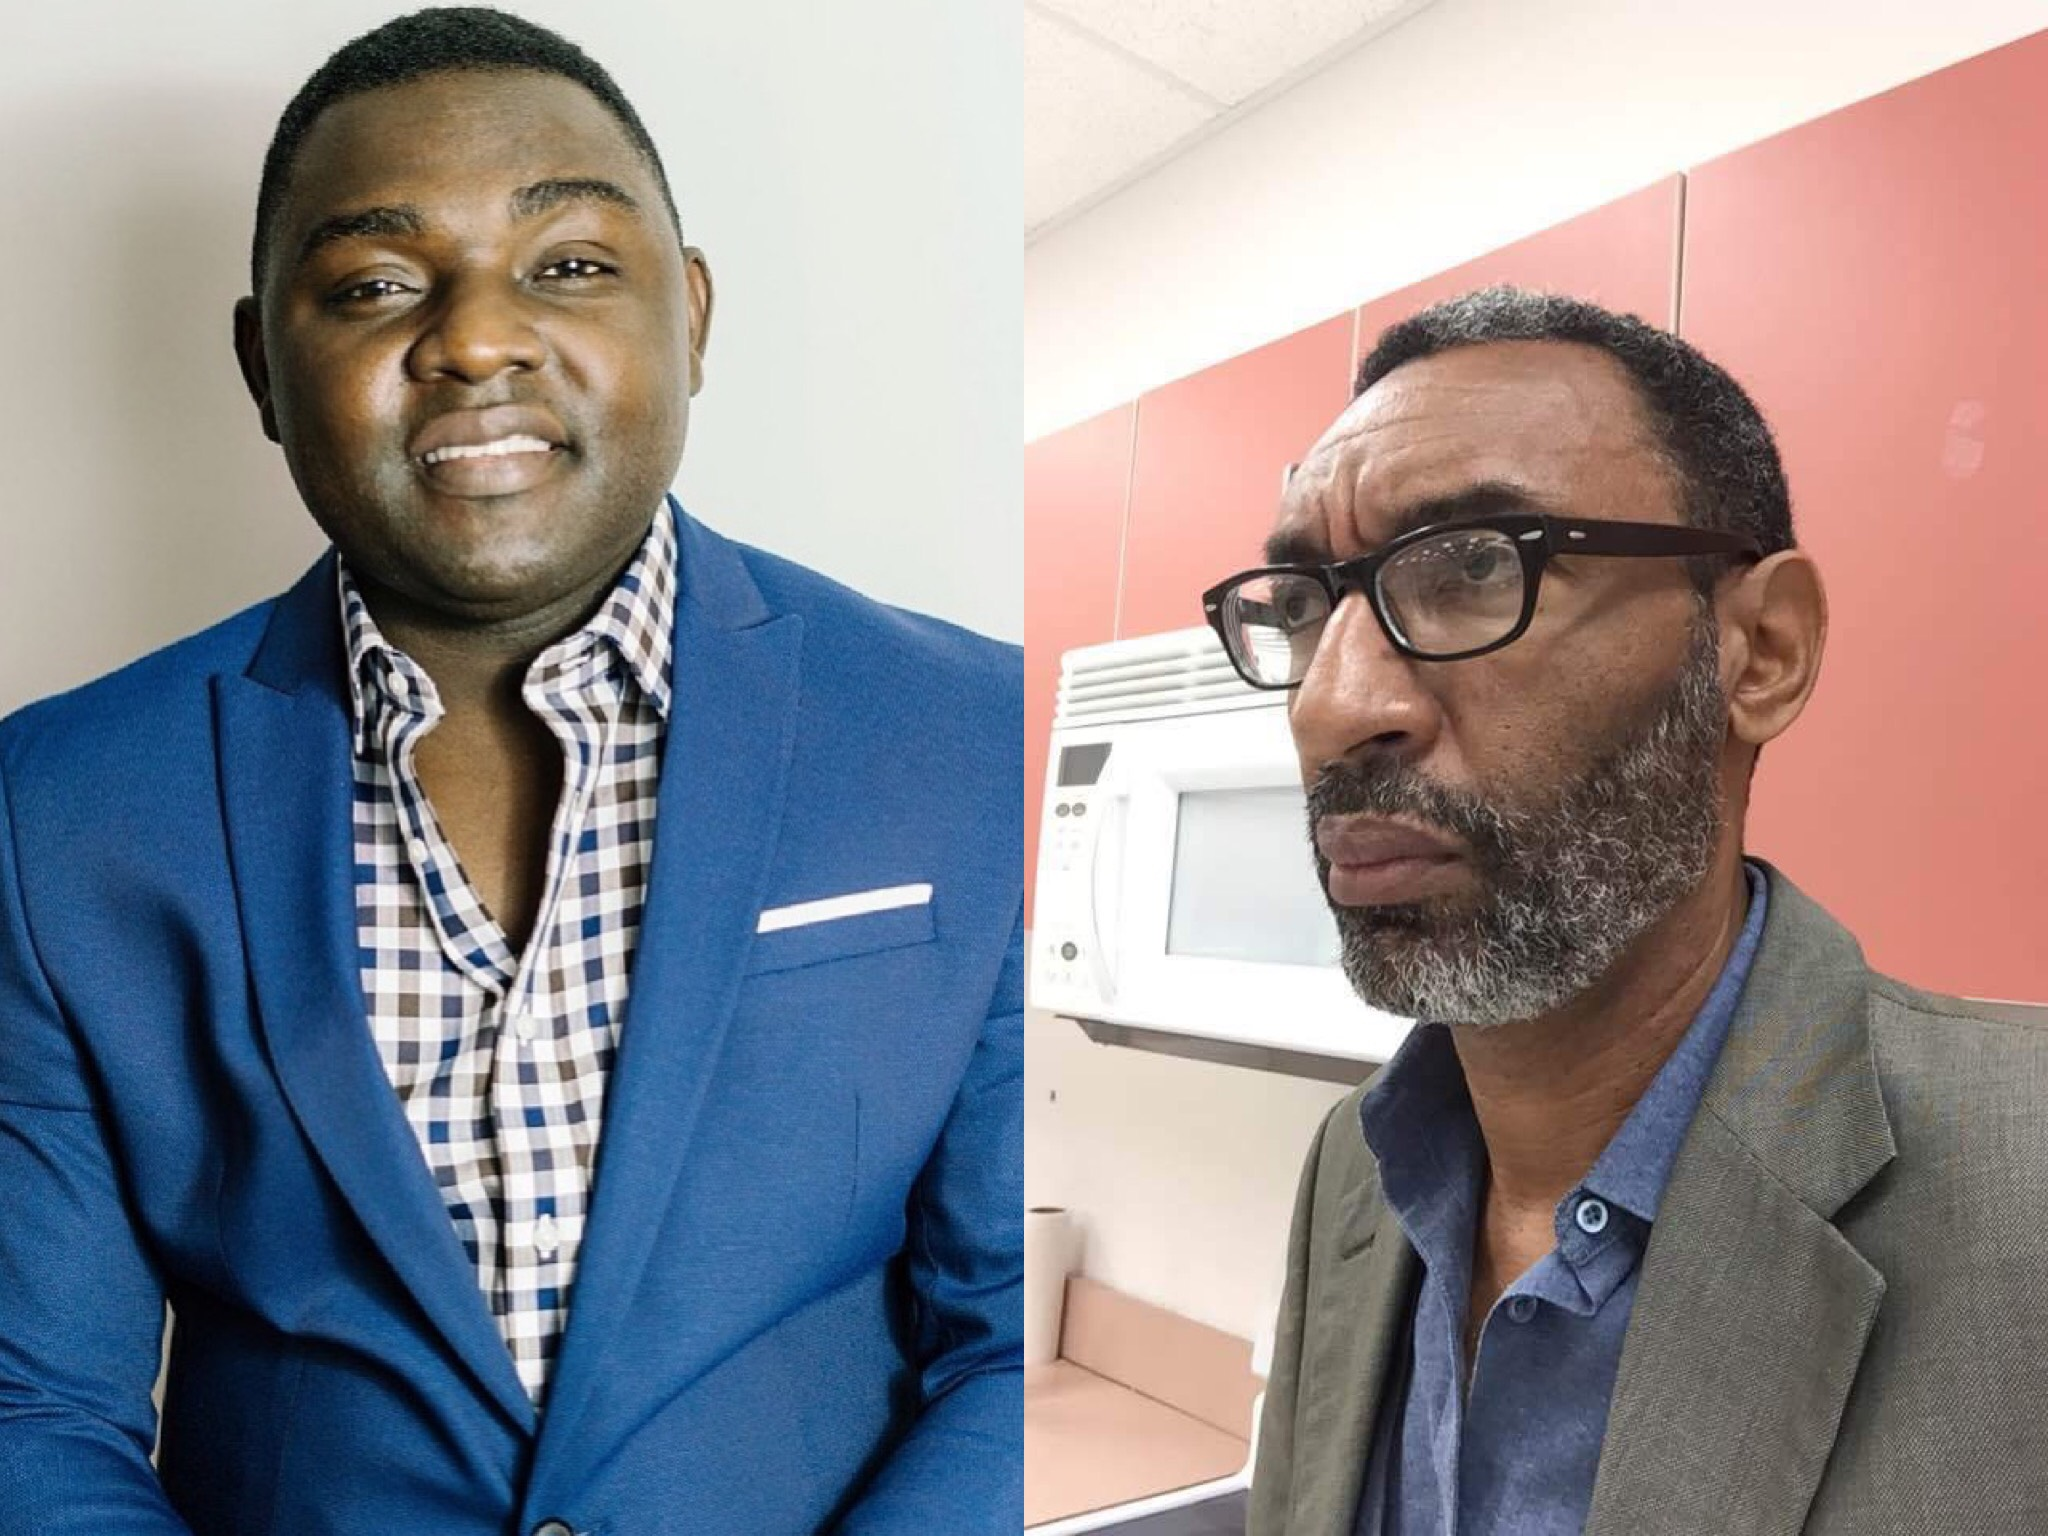 You're A Drug Addict And Not Dr. Kwame Nkrumah's Son – Sekou Nkrumah Told